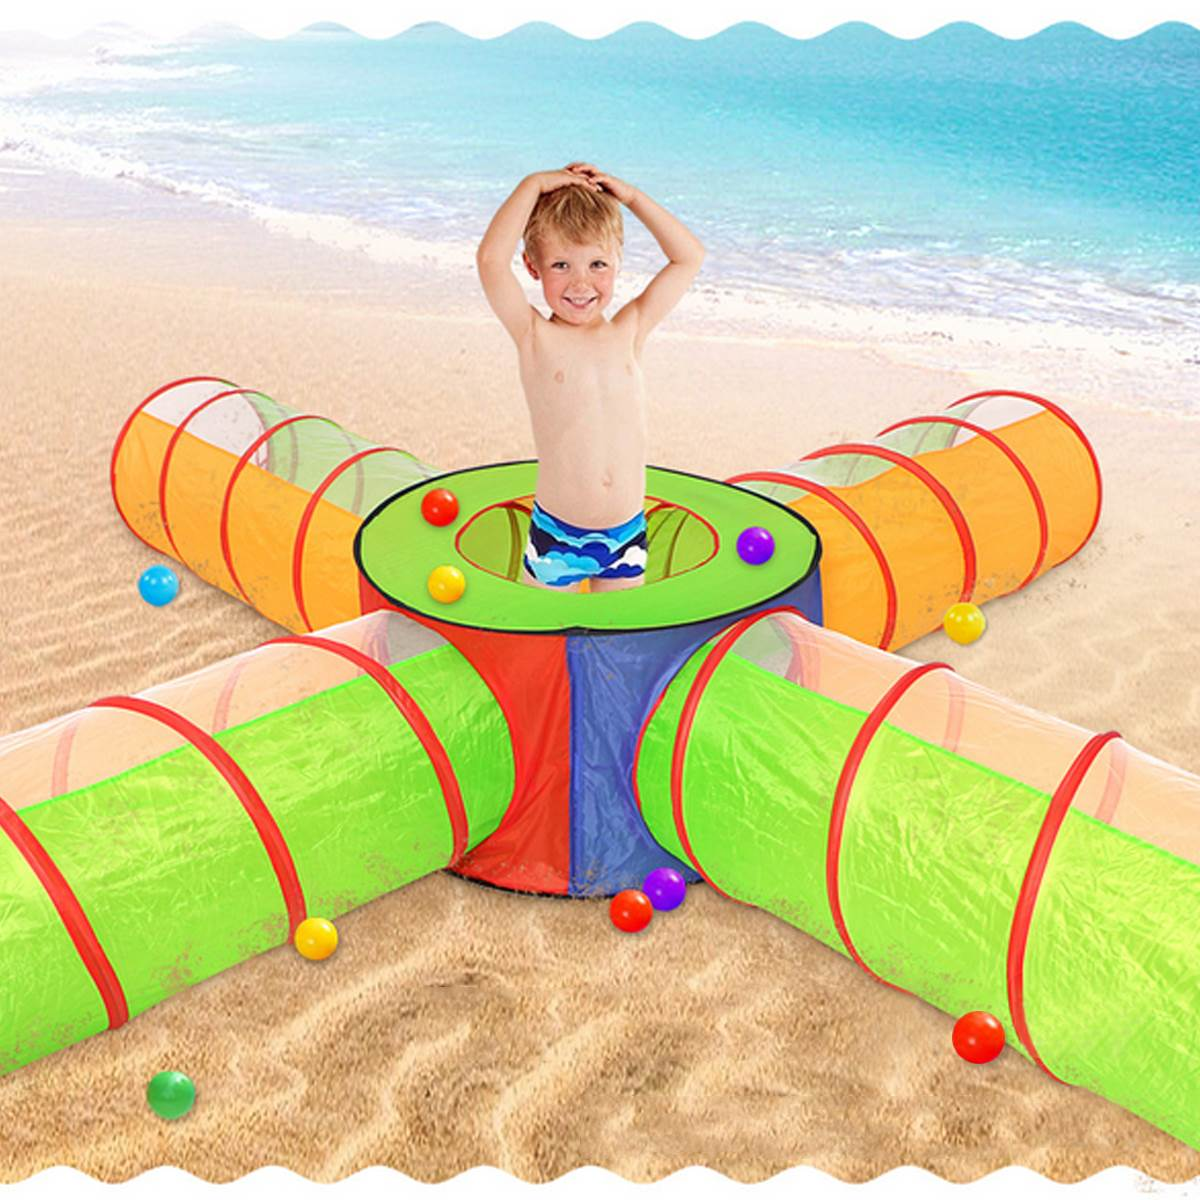 Foldable Children Tent Pool-Tube Pop-up Play Tent Toy Tunnel Kids Play House Ball Pool For Kids Indoor Outdoor Toy new arrival indoor outdoor large children s house game room children s toys 3 in 1 square crawl tunnel folding kid play tent